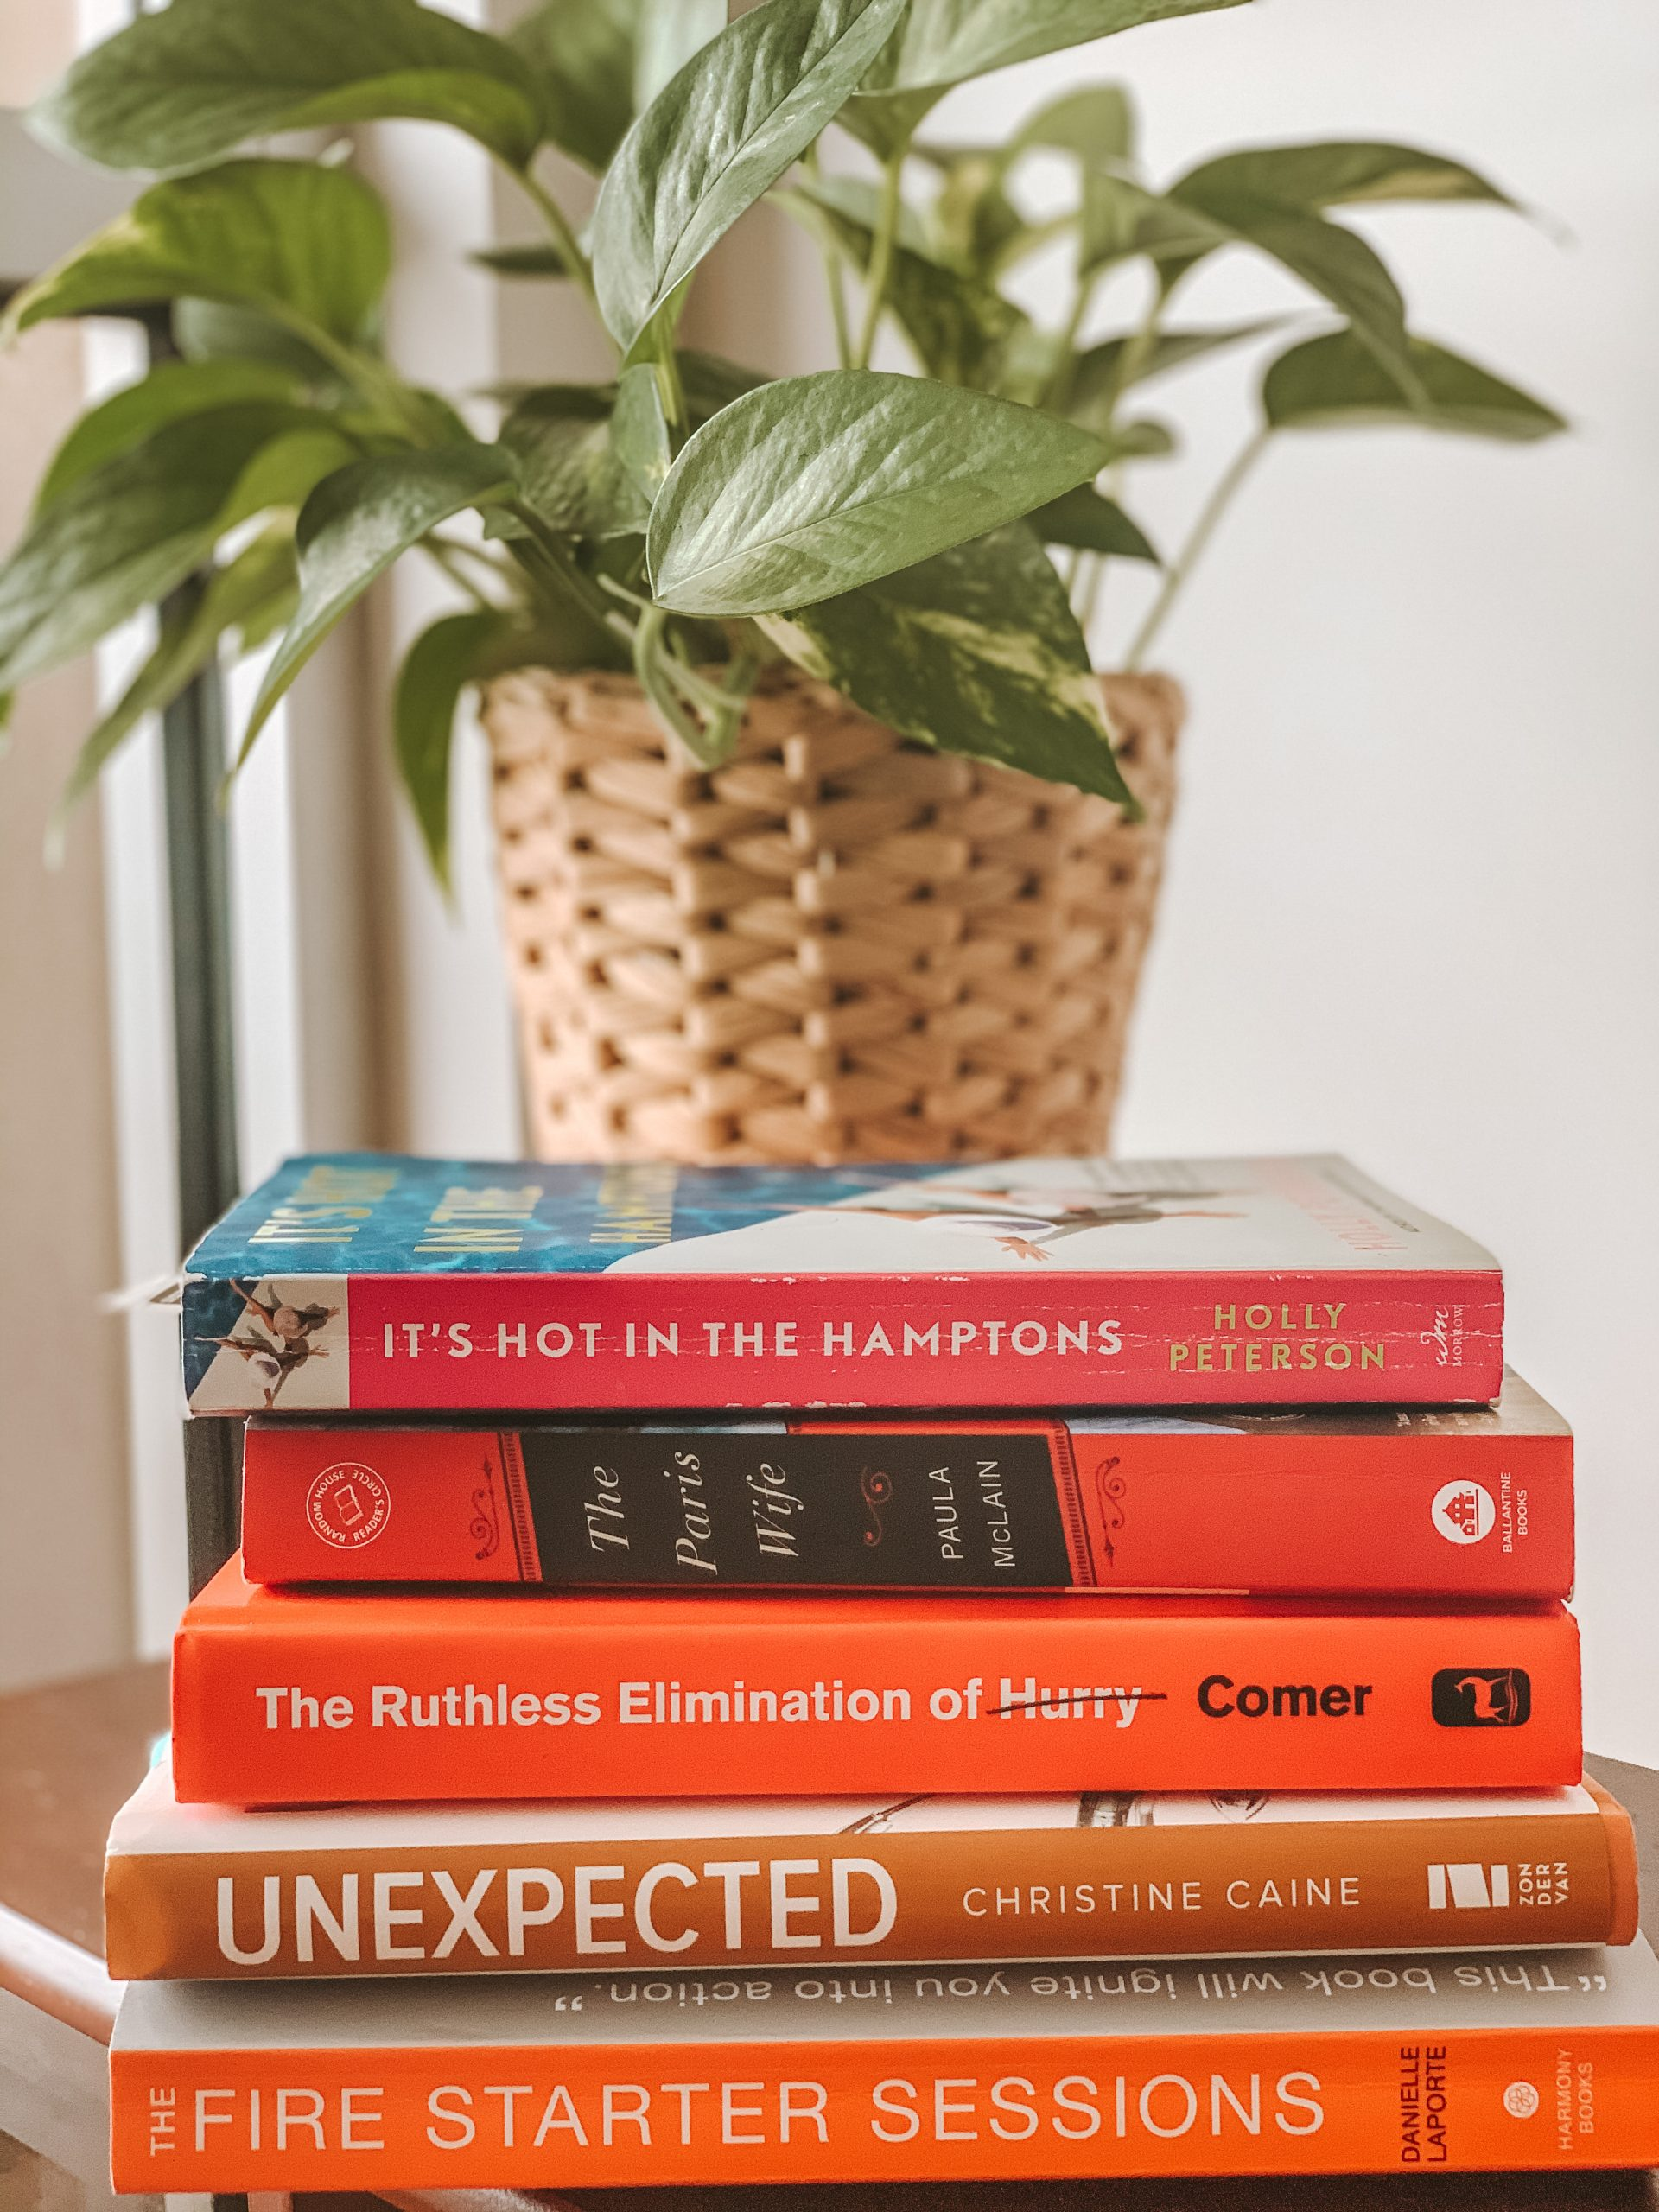 5 Books to Read during Covid 19